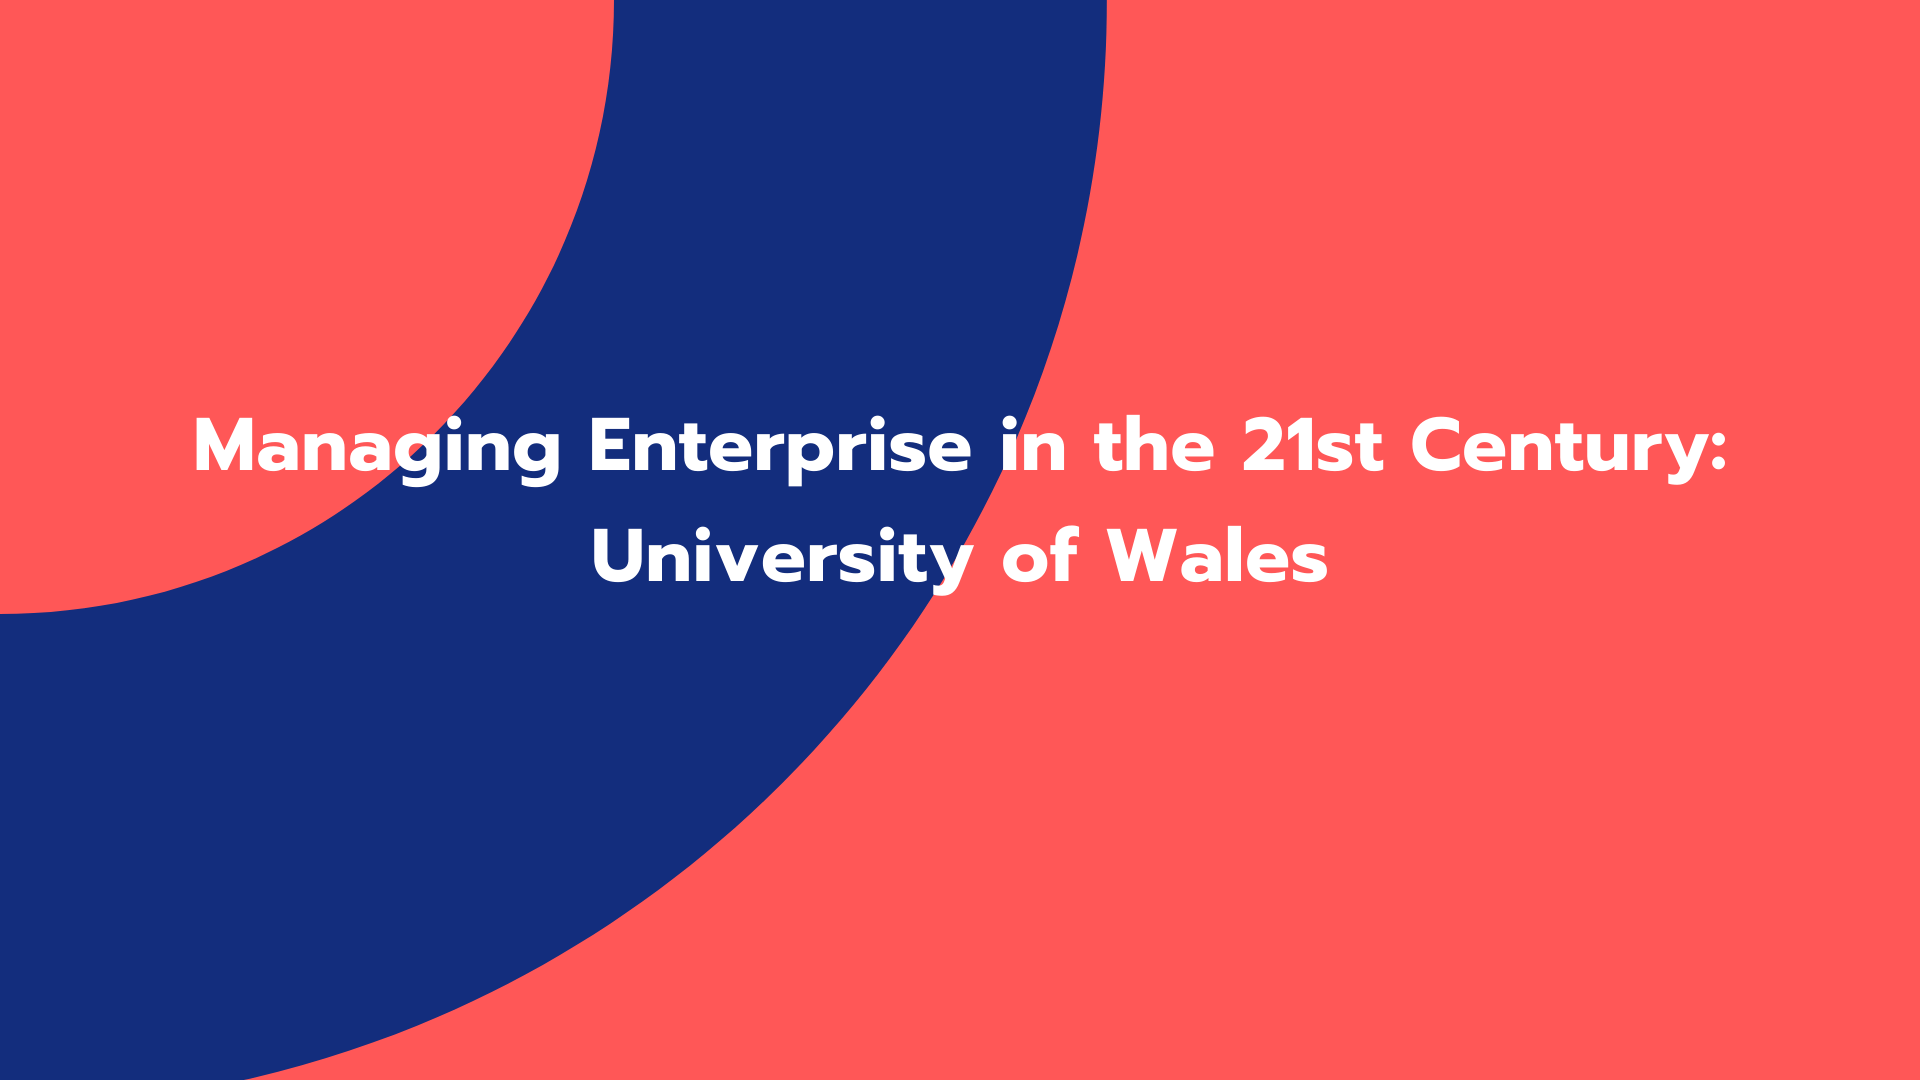 Managing Enterprise in the 21st Century: University of Wales